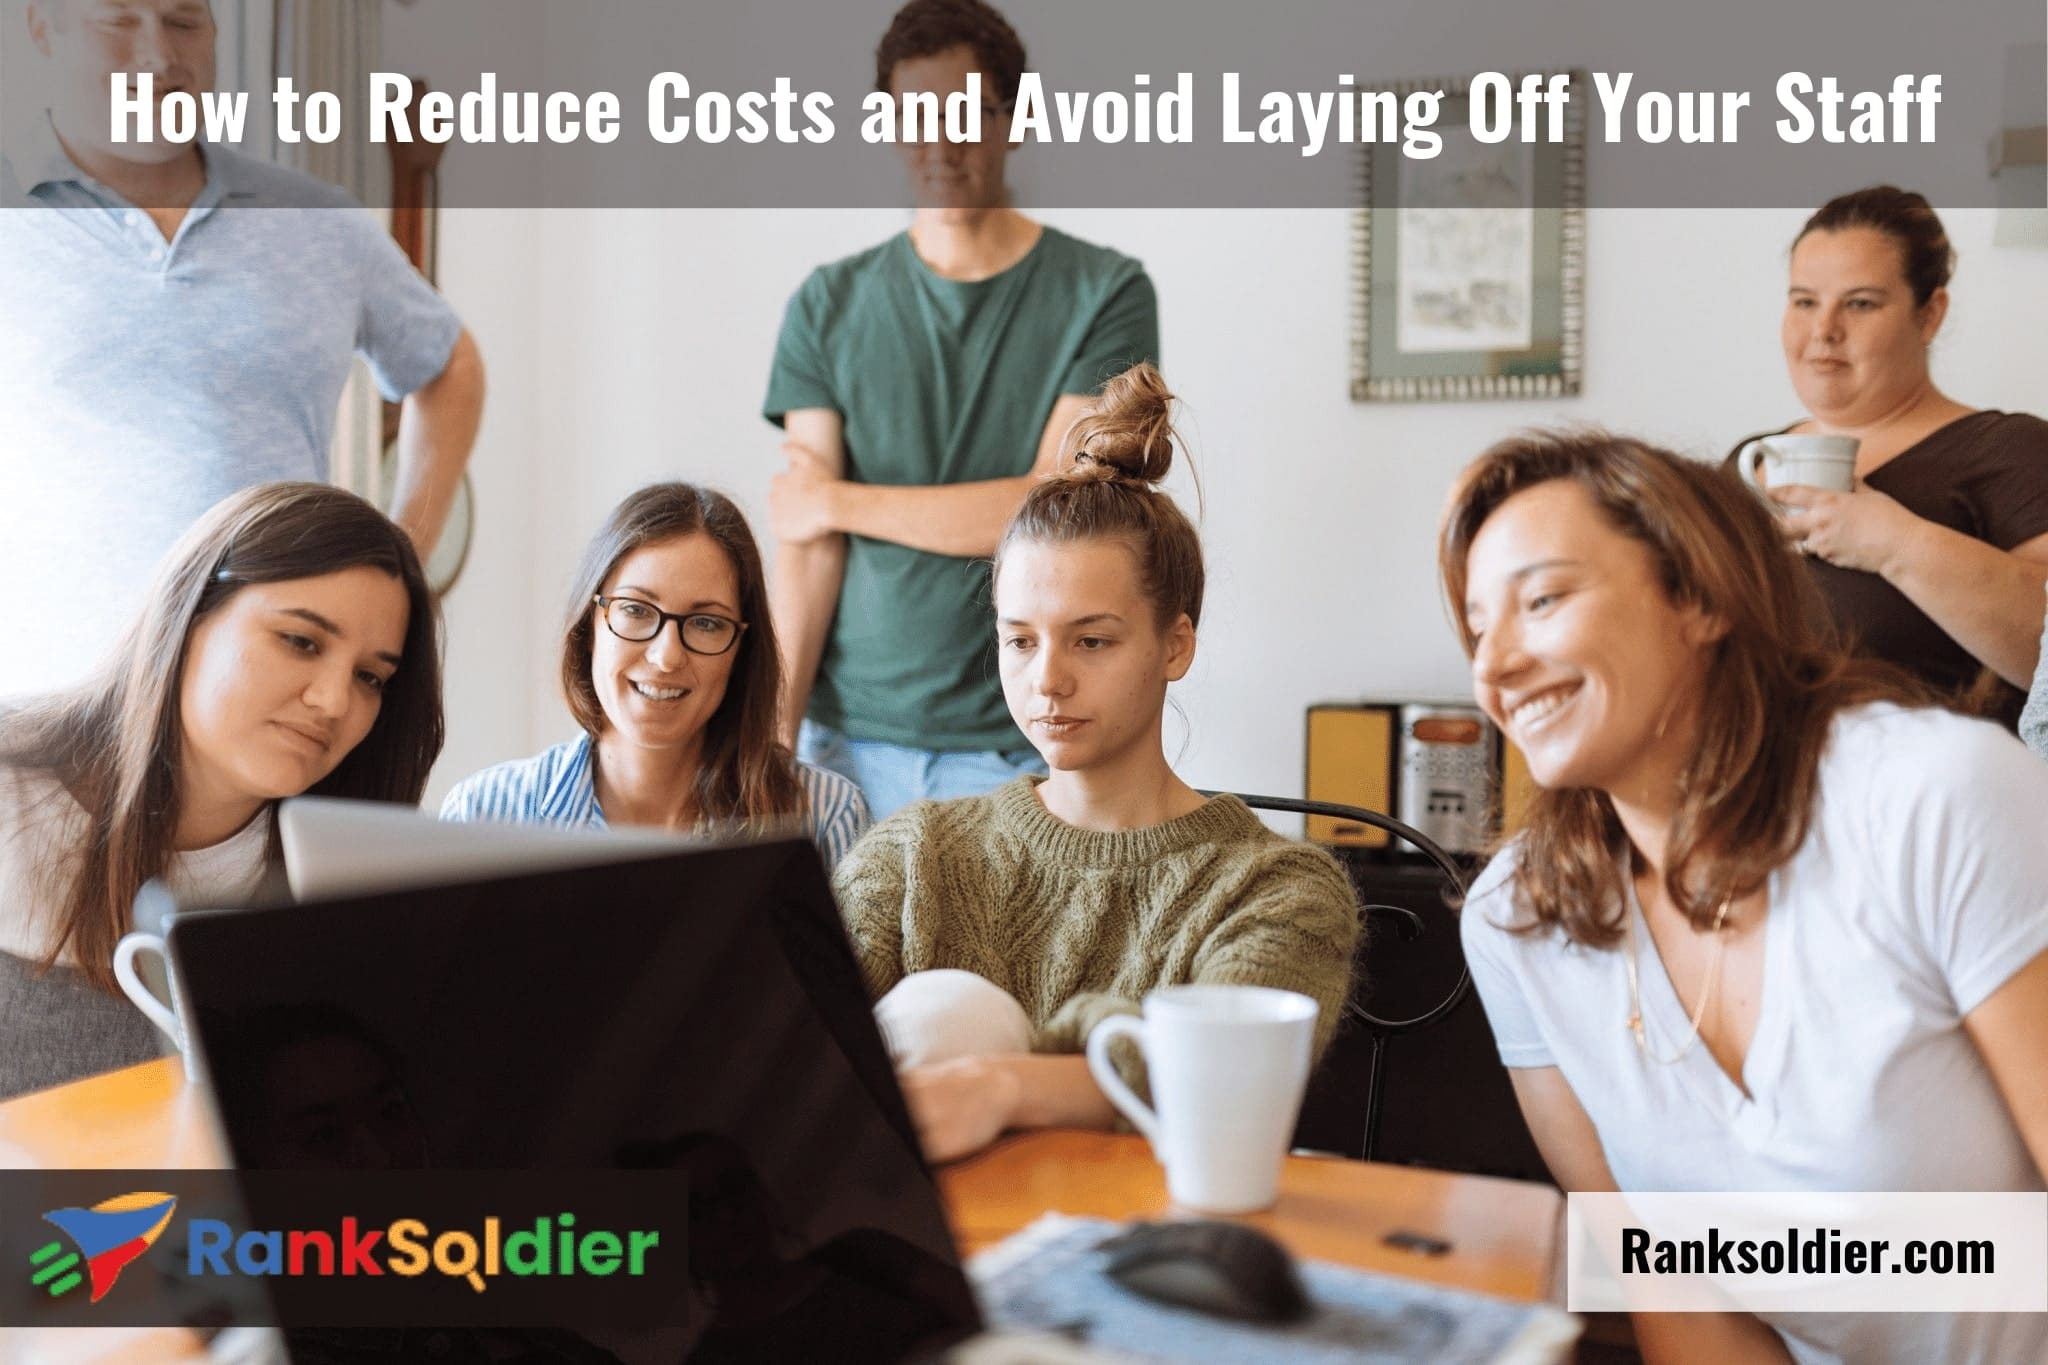 How to Reduce Costs and Avoid Laying Off Your Staff